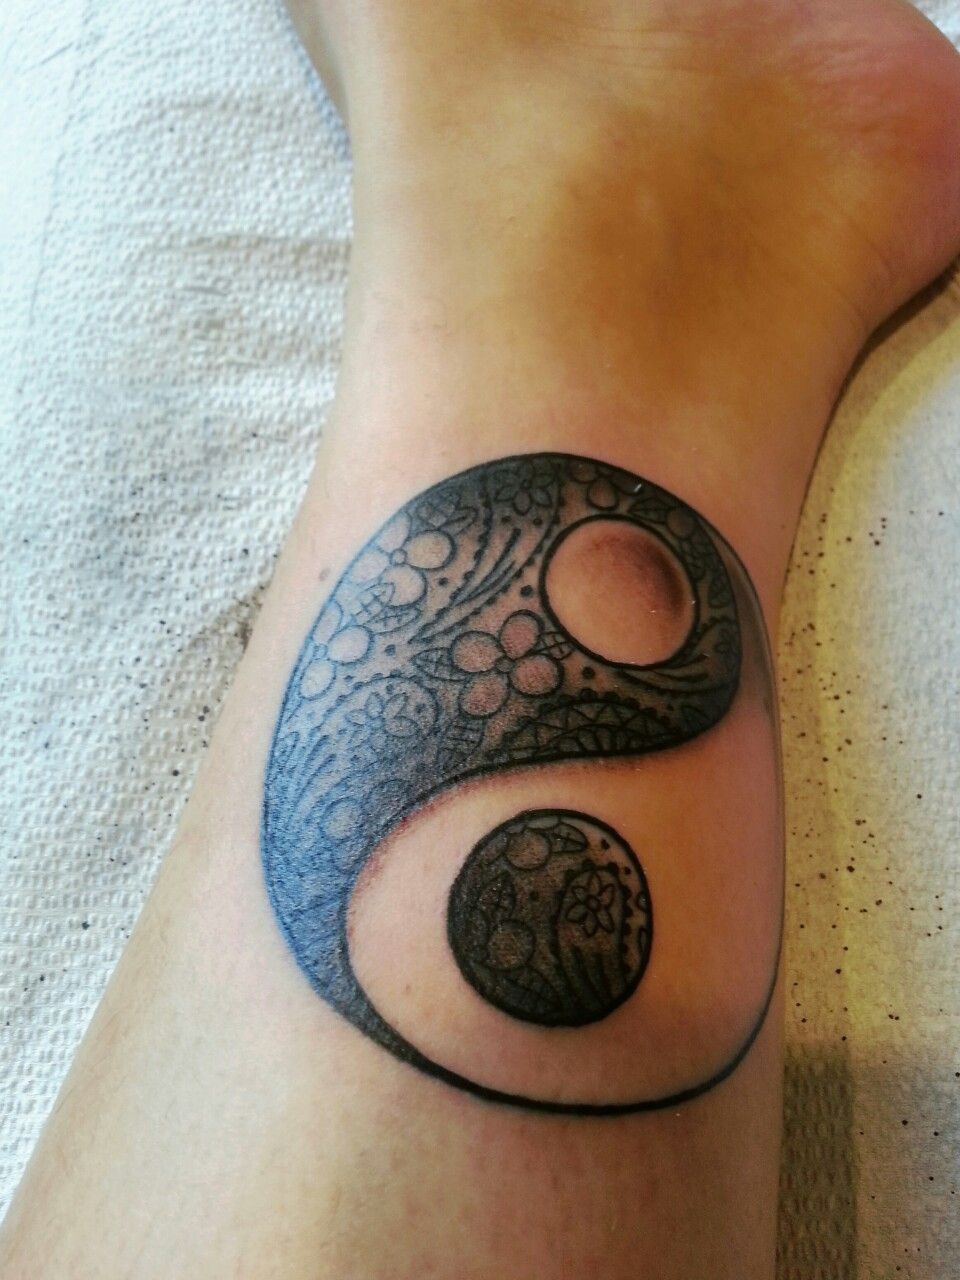 Ankle tattoo ideas for women ankle tattoo  tumblr not gonna get one on my ankle but this is